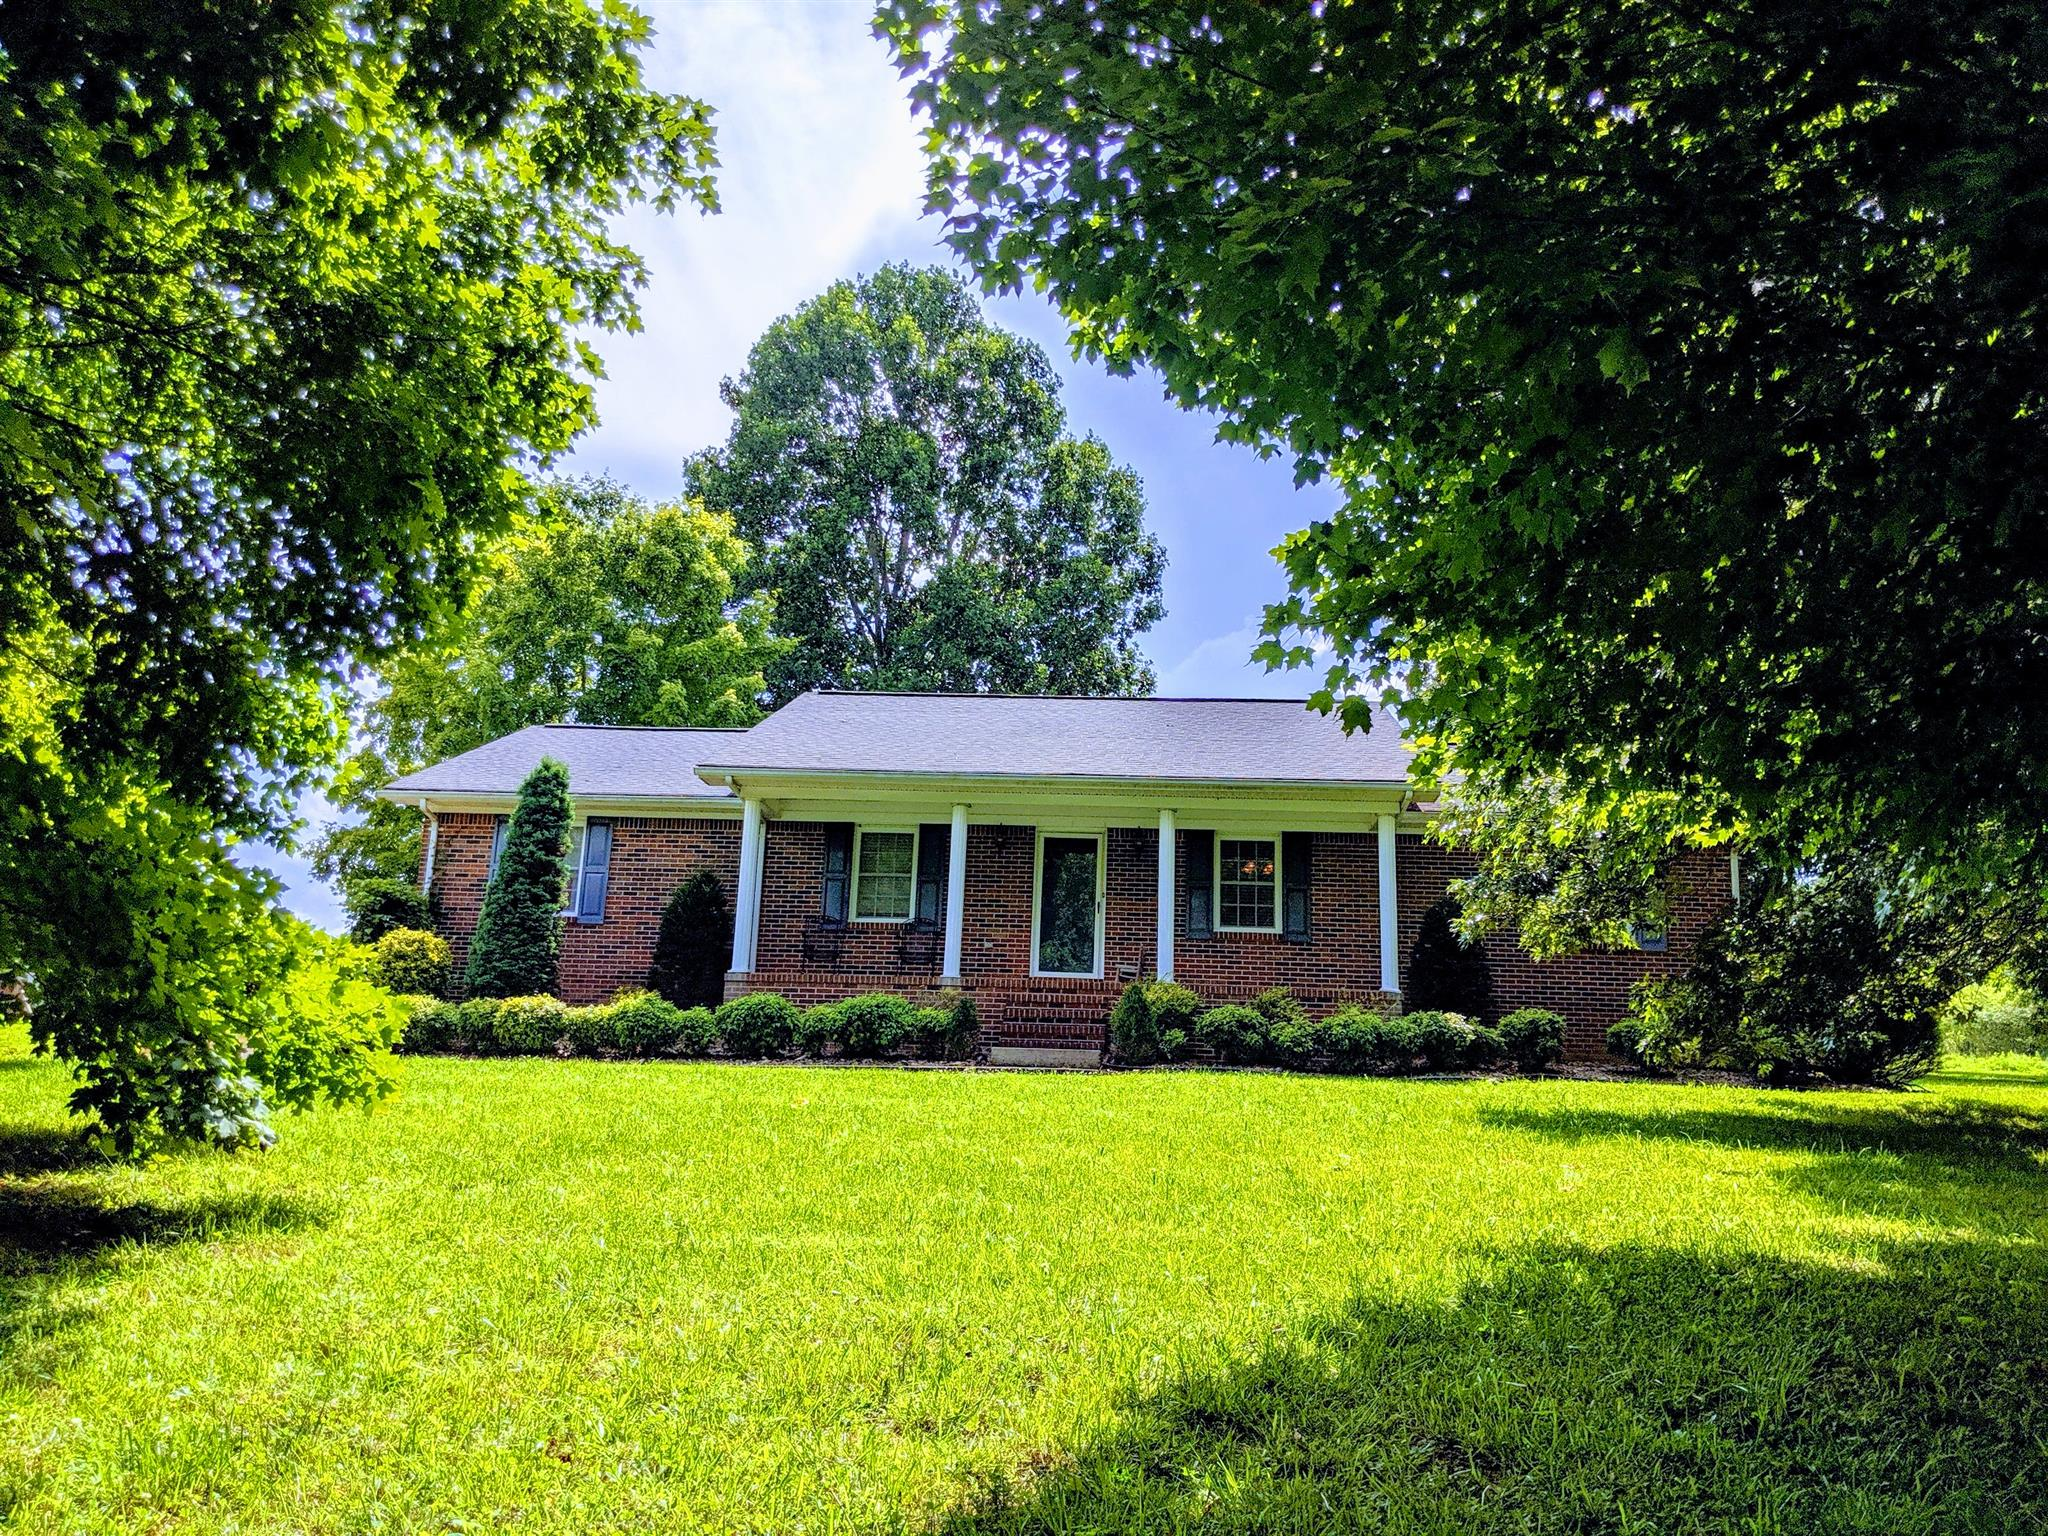 671 Wilson Rd, McMinnville, TN 37110 - McMinnville, TN real estate listing